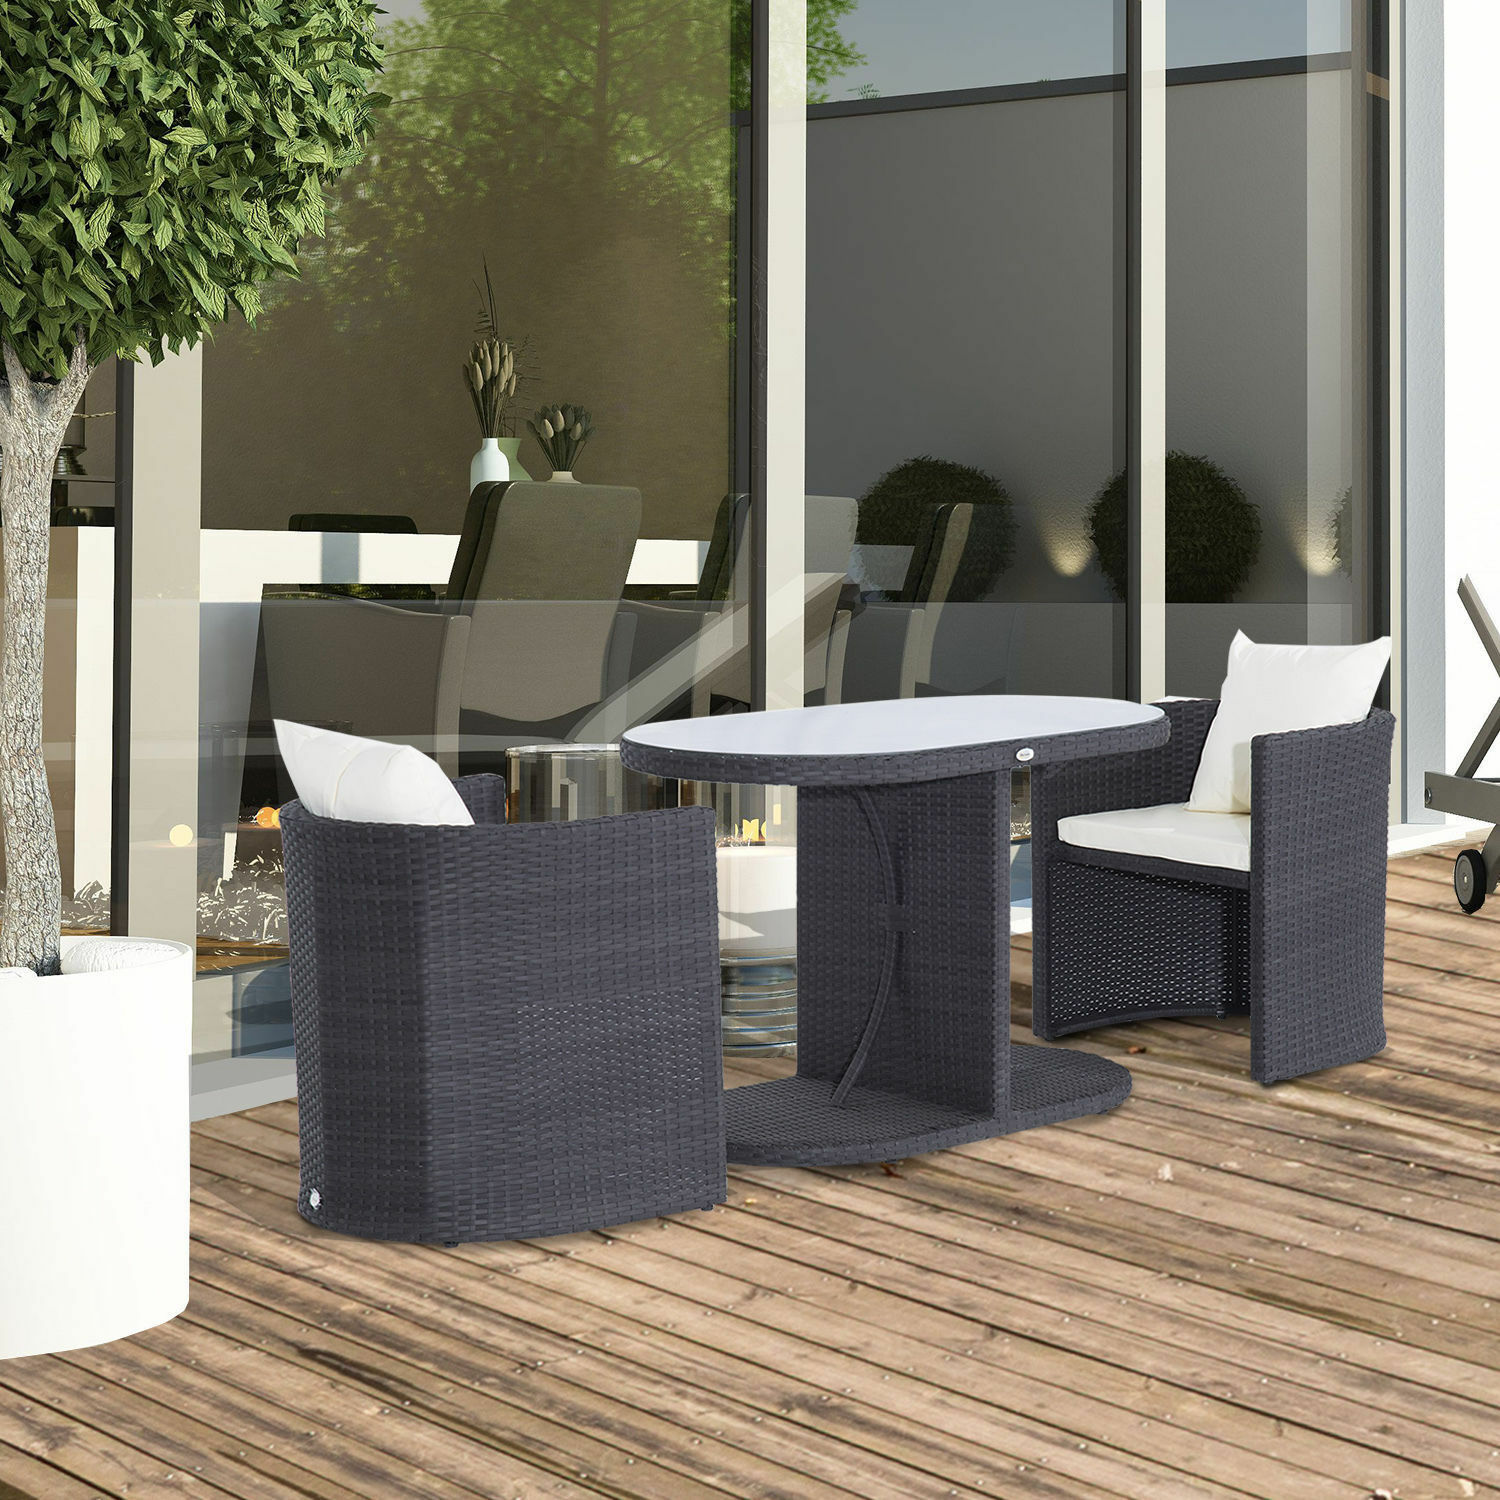 gartenm bel 7 tlg polyrattan gartenset balkonm bel sitzgruppe zusammenstellbar eur 279 95. Black Bedroom Furniture Sets. Home Design Ideas